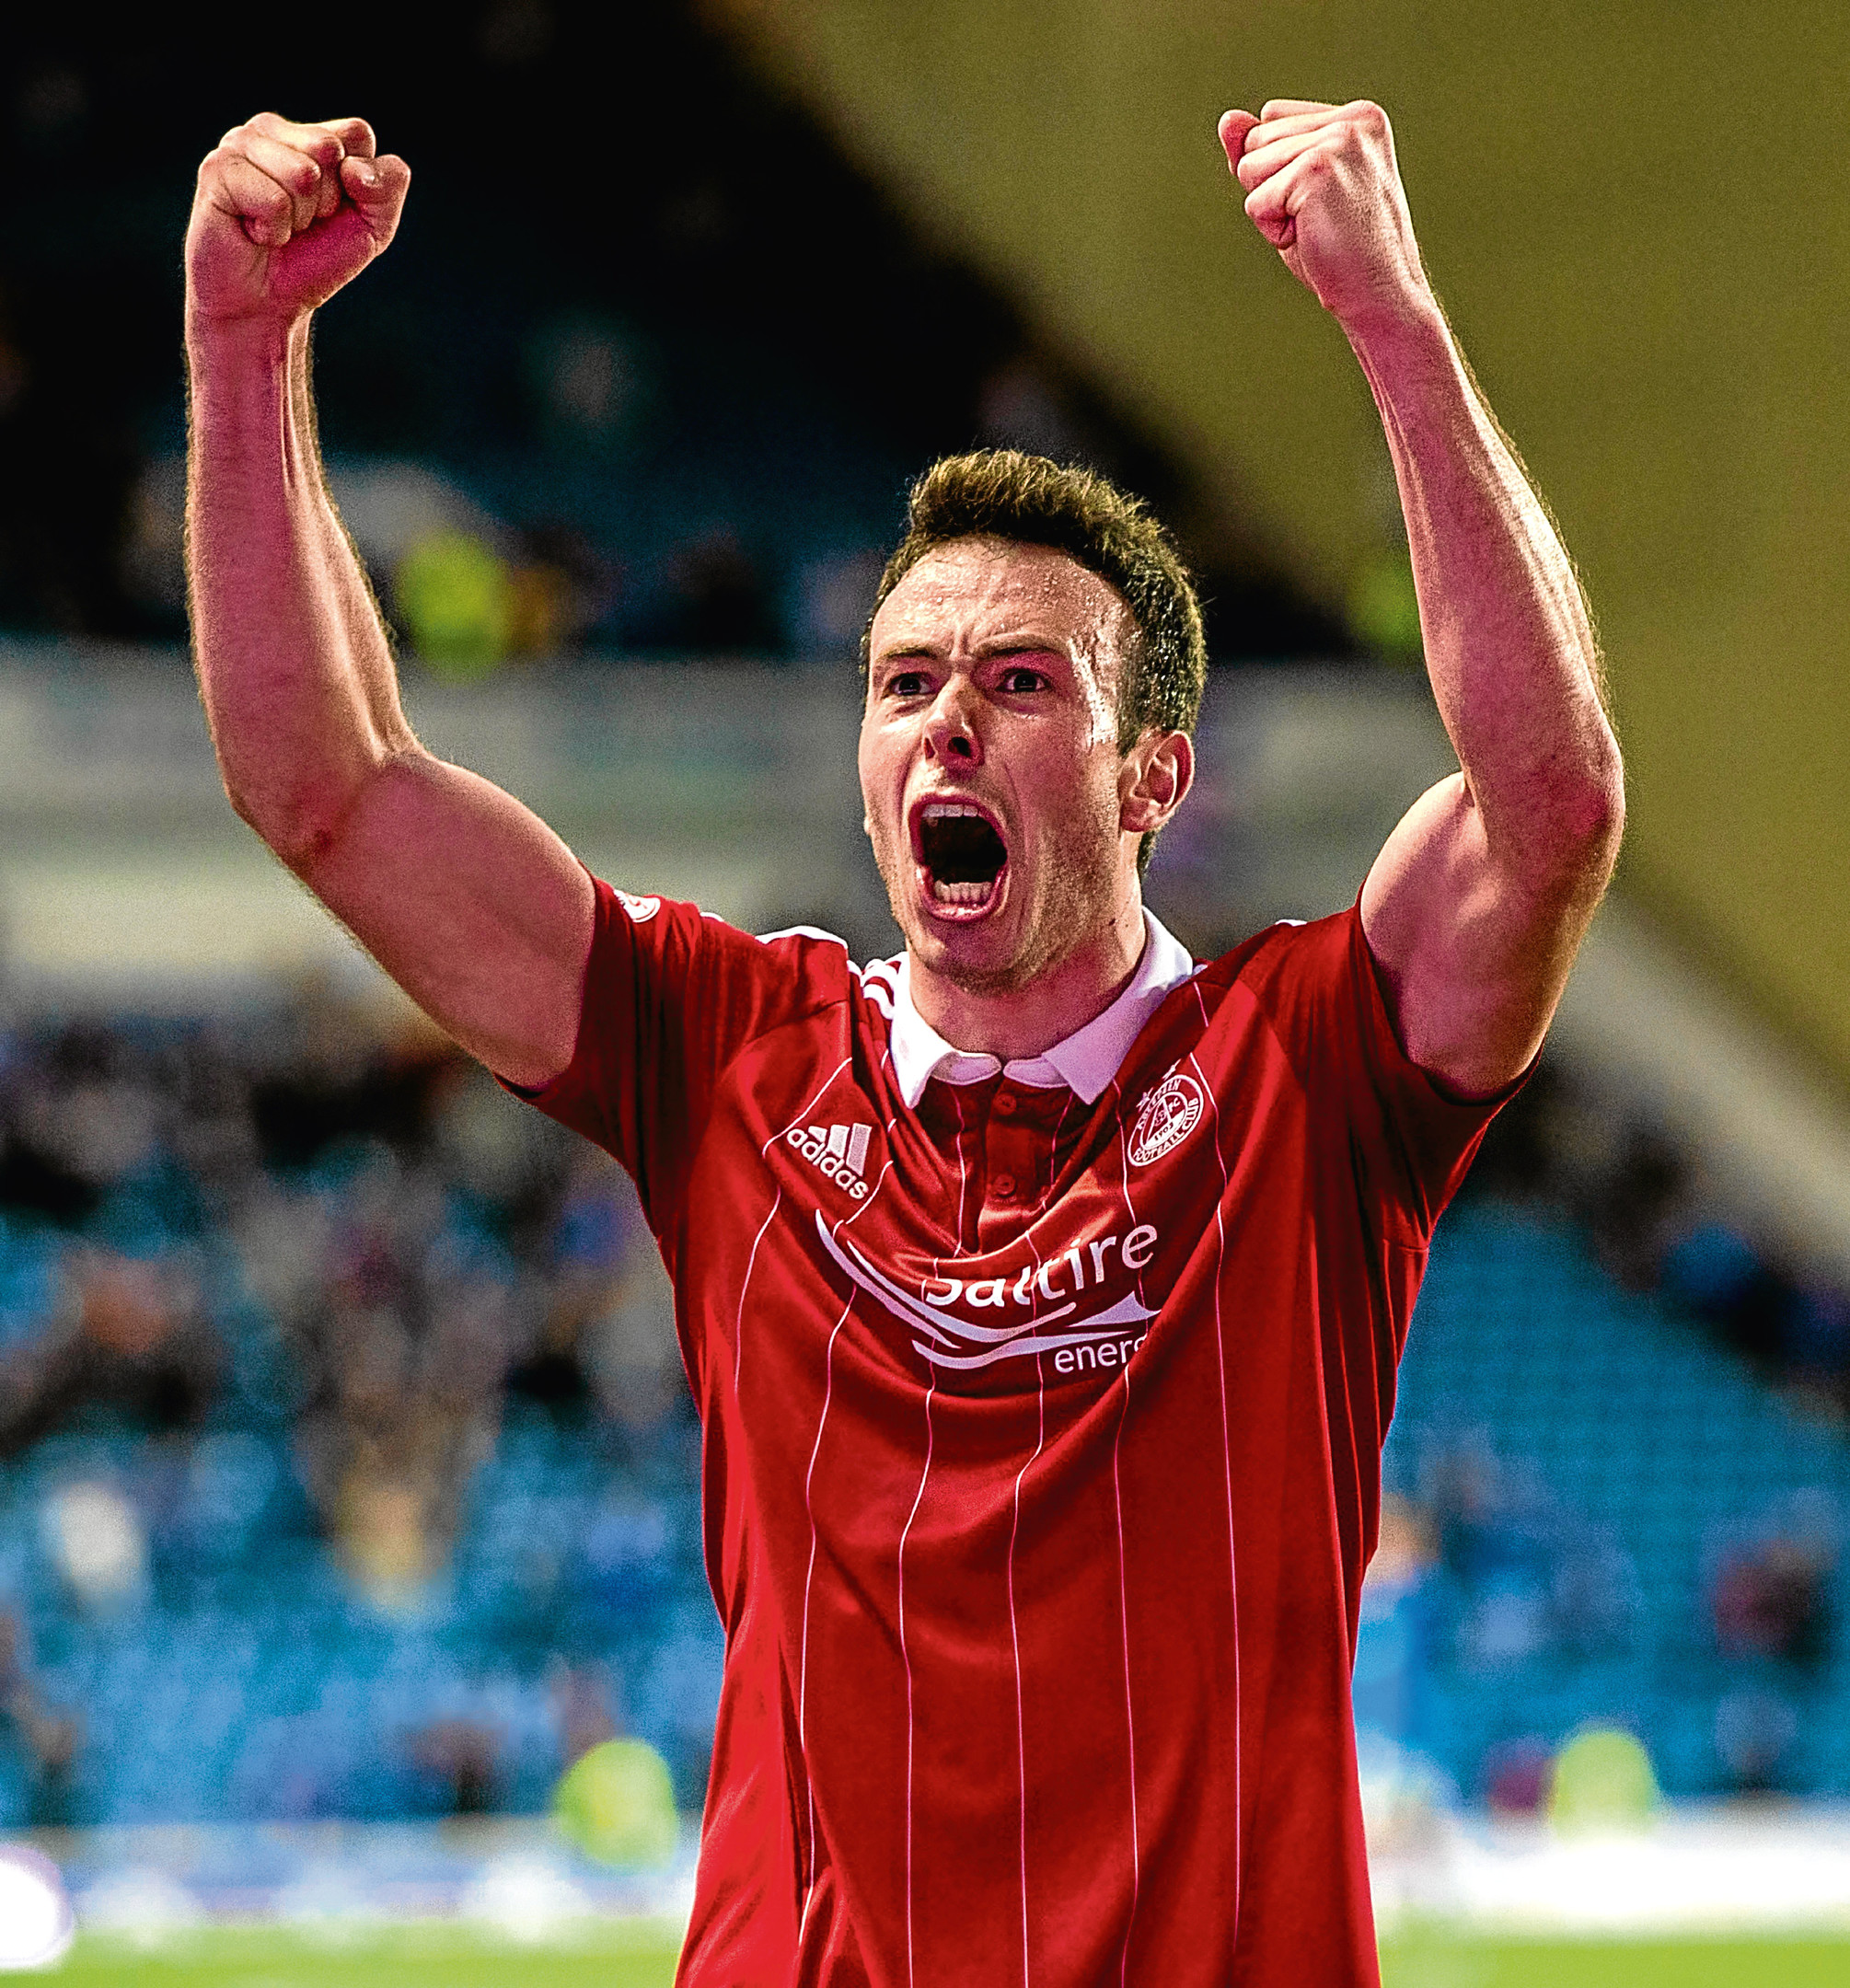 17/05/17 LADBROKES PREMIERSHIP RANGERS v ABERDEEN IBROX - GLASGOW Aberdeen's Andrew Considine at full-time